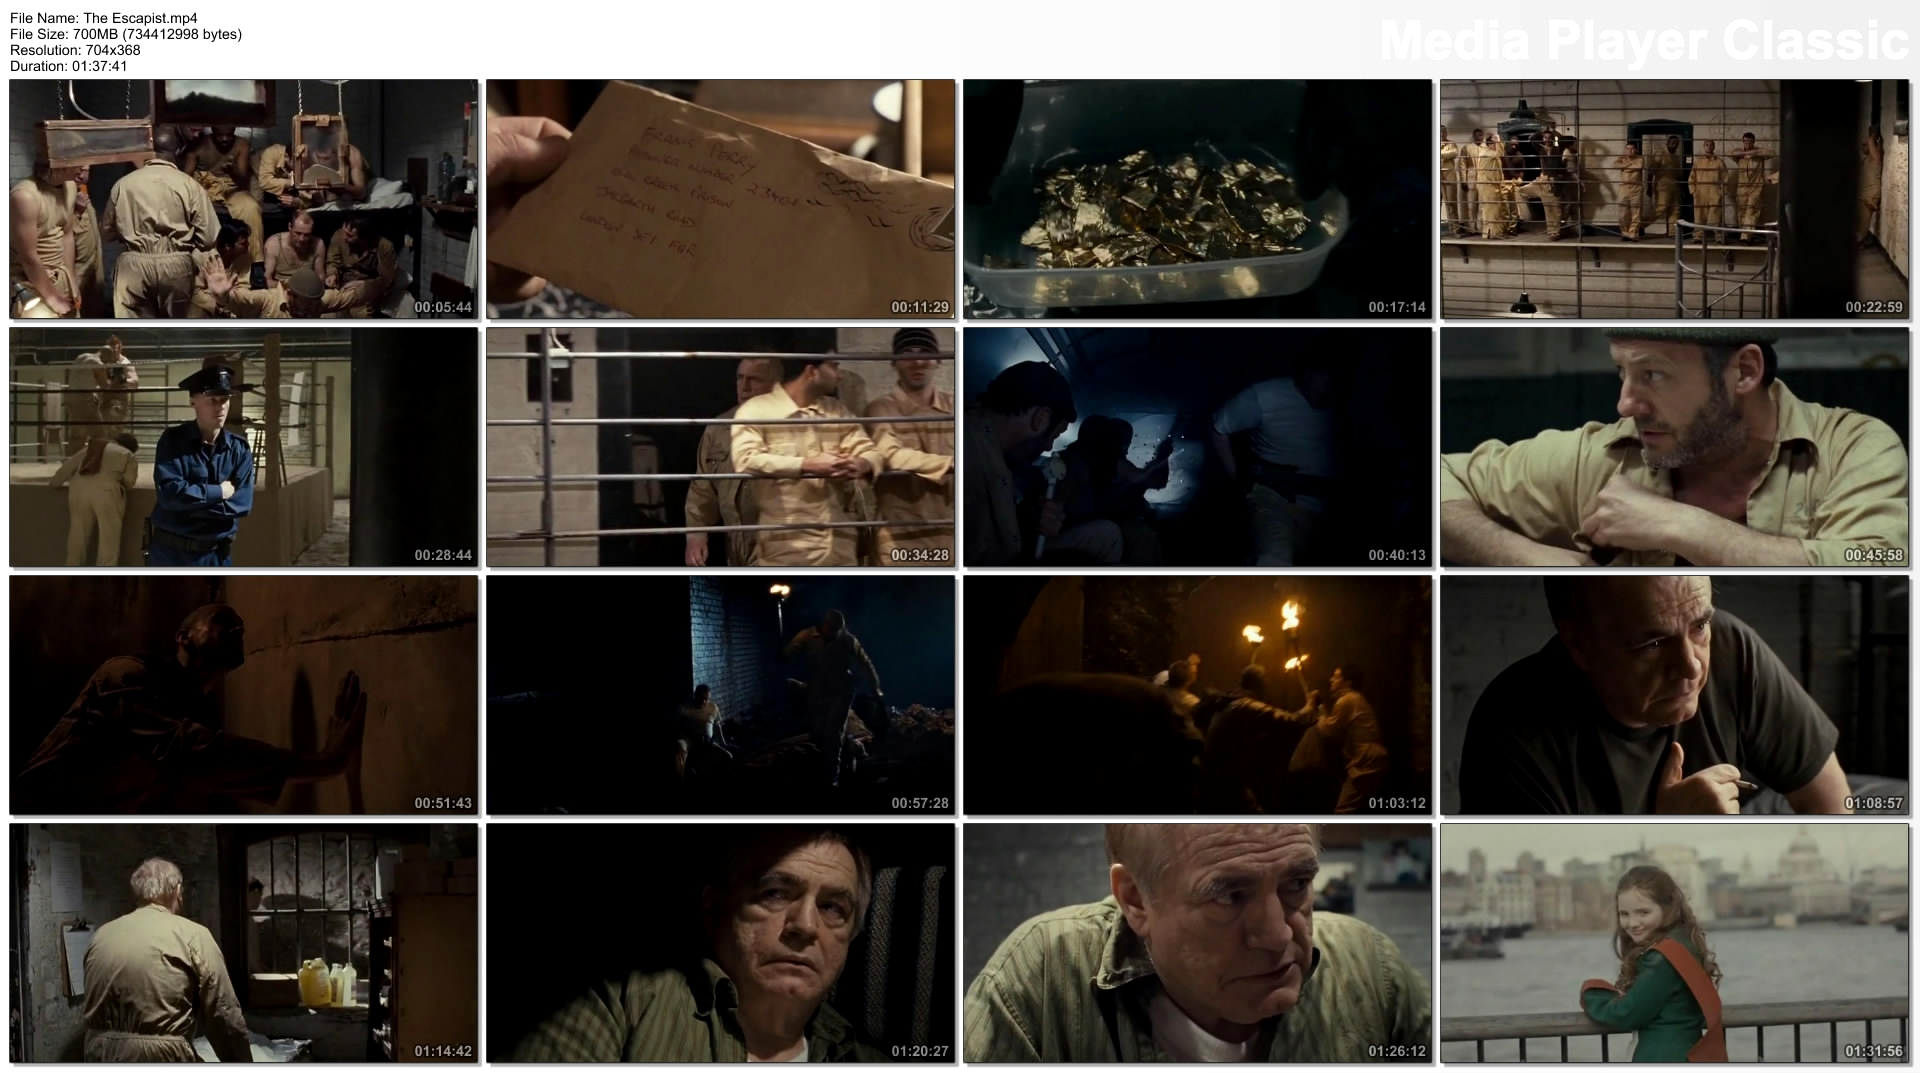 The Escapist 2008 DVDRip H264 AAC SecretMyth (Kingdom Release) preview 1